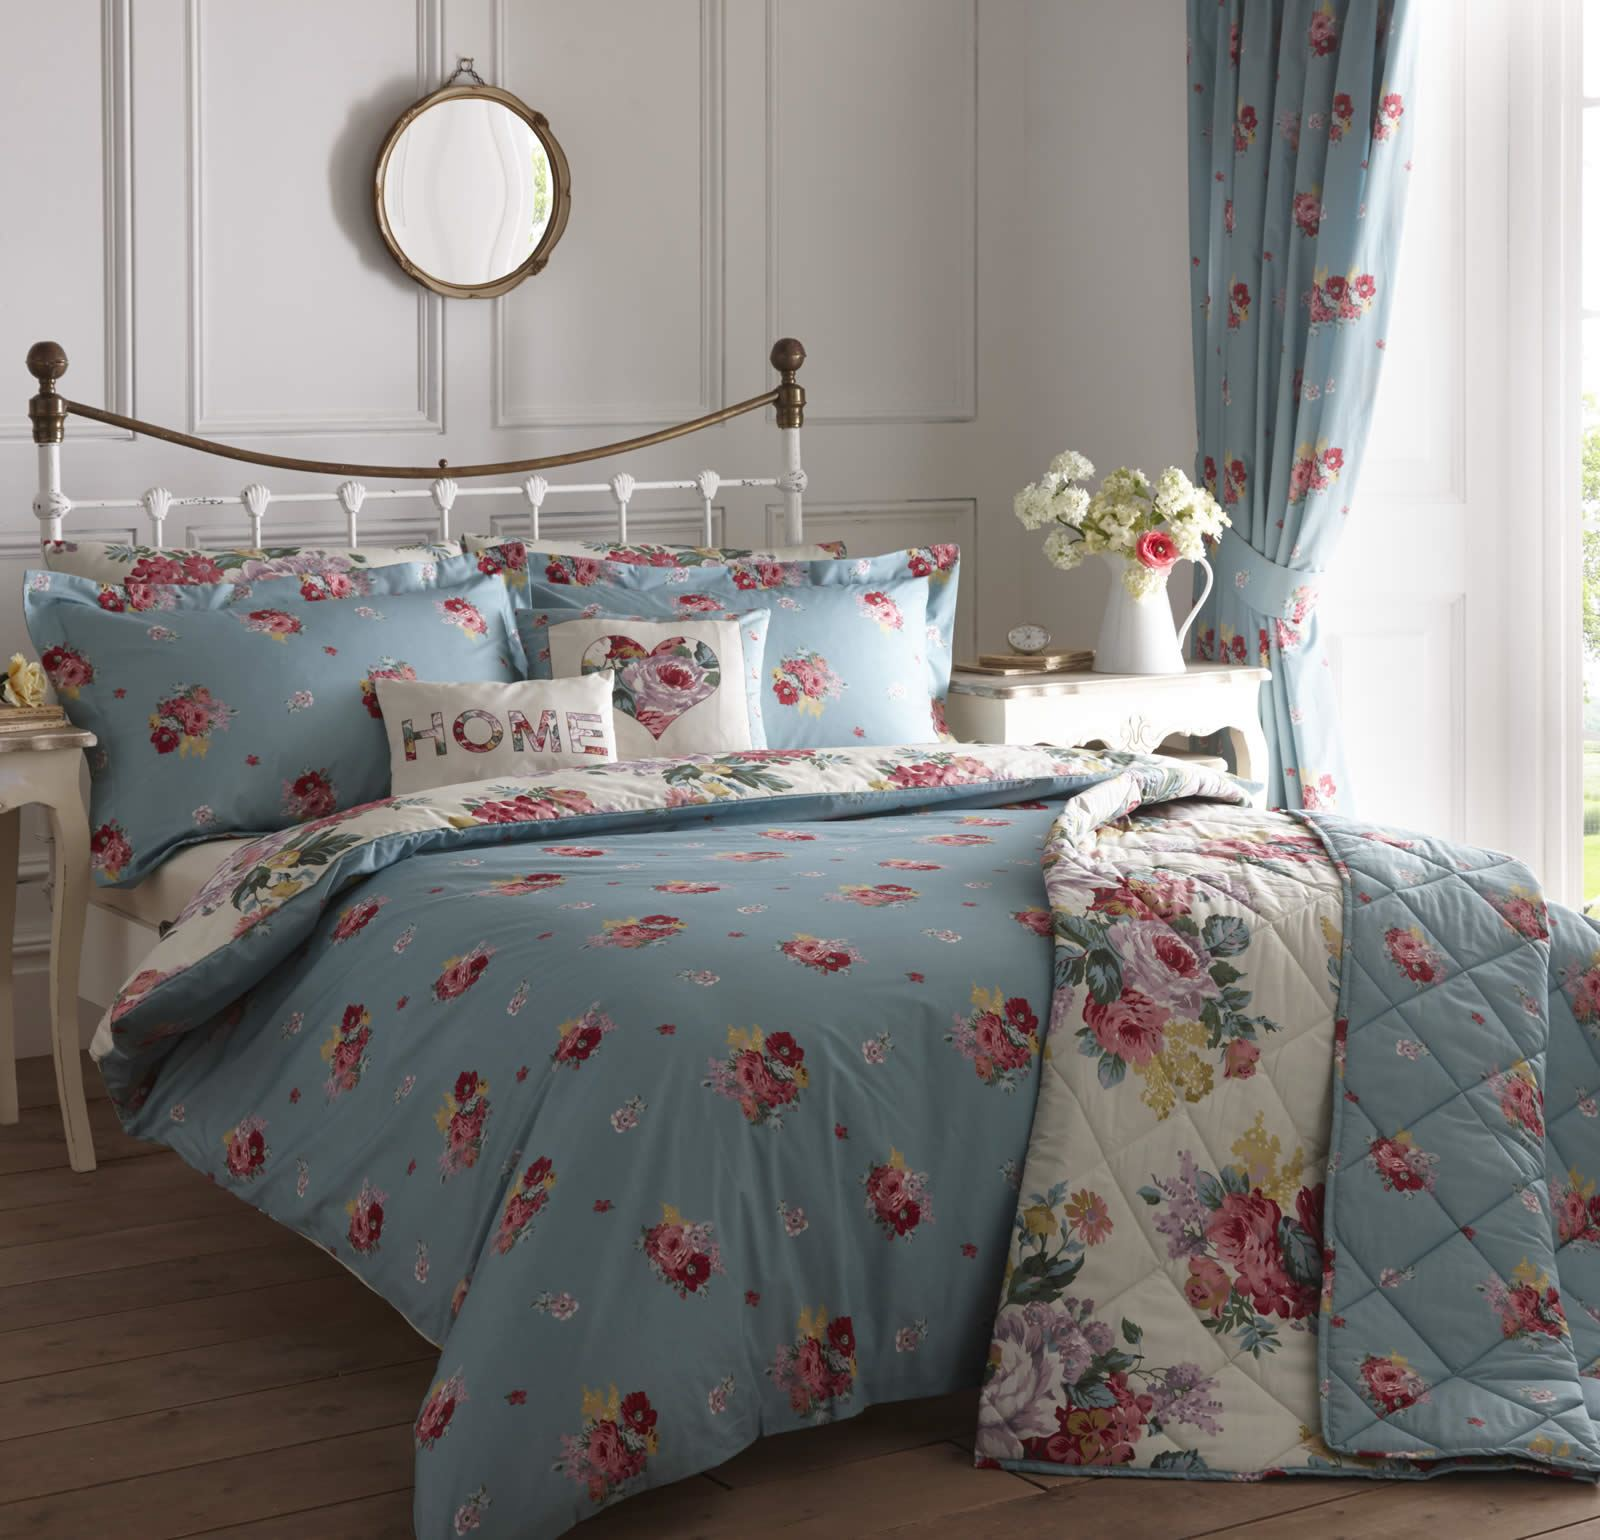 CAMBERLEY VINTAGE STYLE REVERSIBLE FLORAL DUVET COVER EASY ...